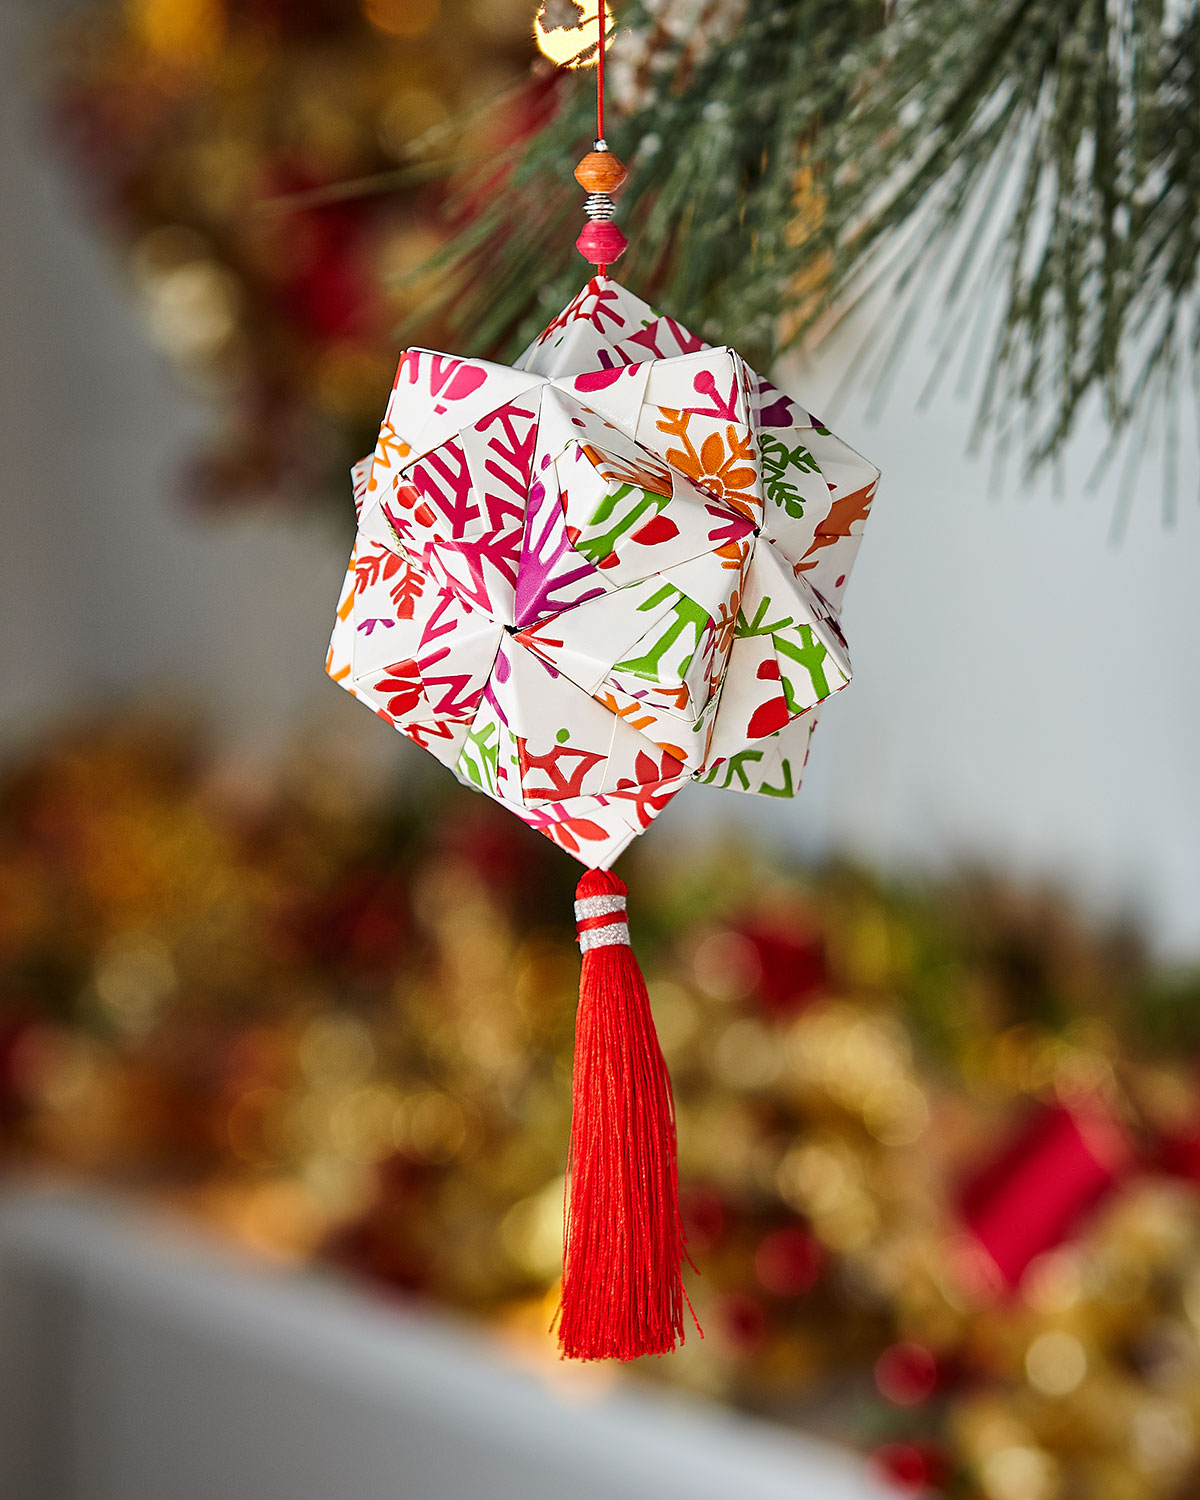 Paper for Water Handcrafted Origami Christmas Ornament ...